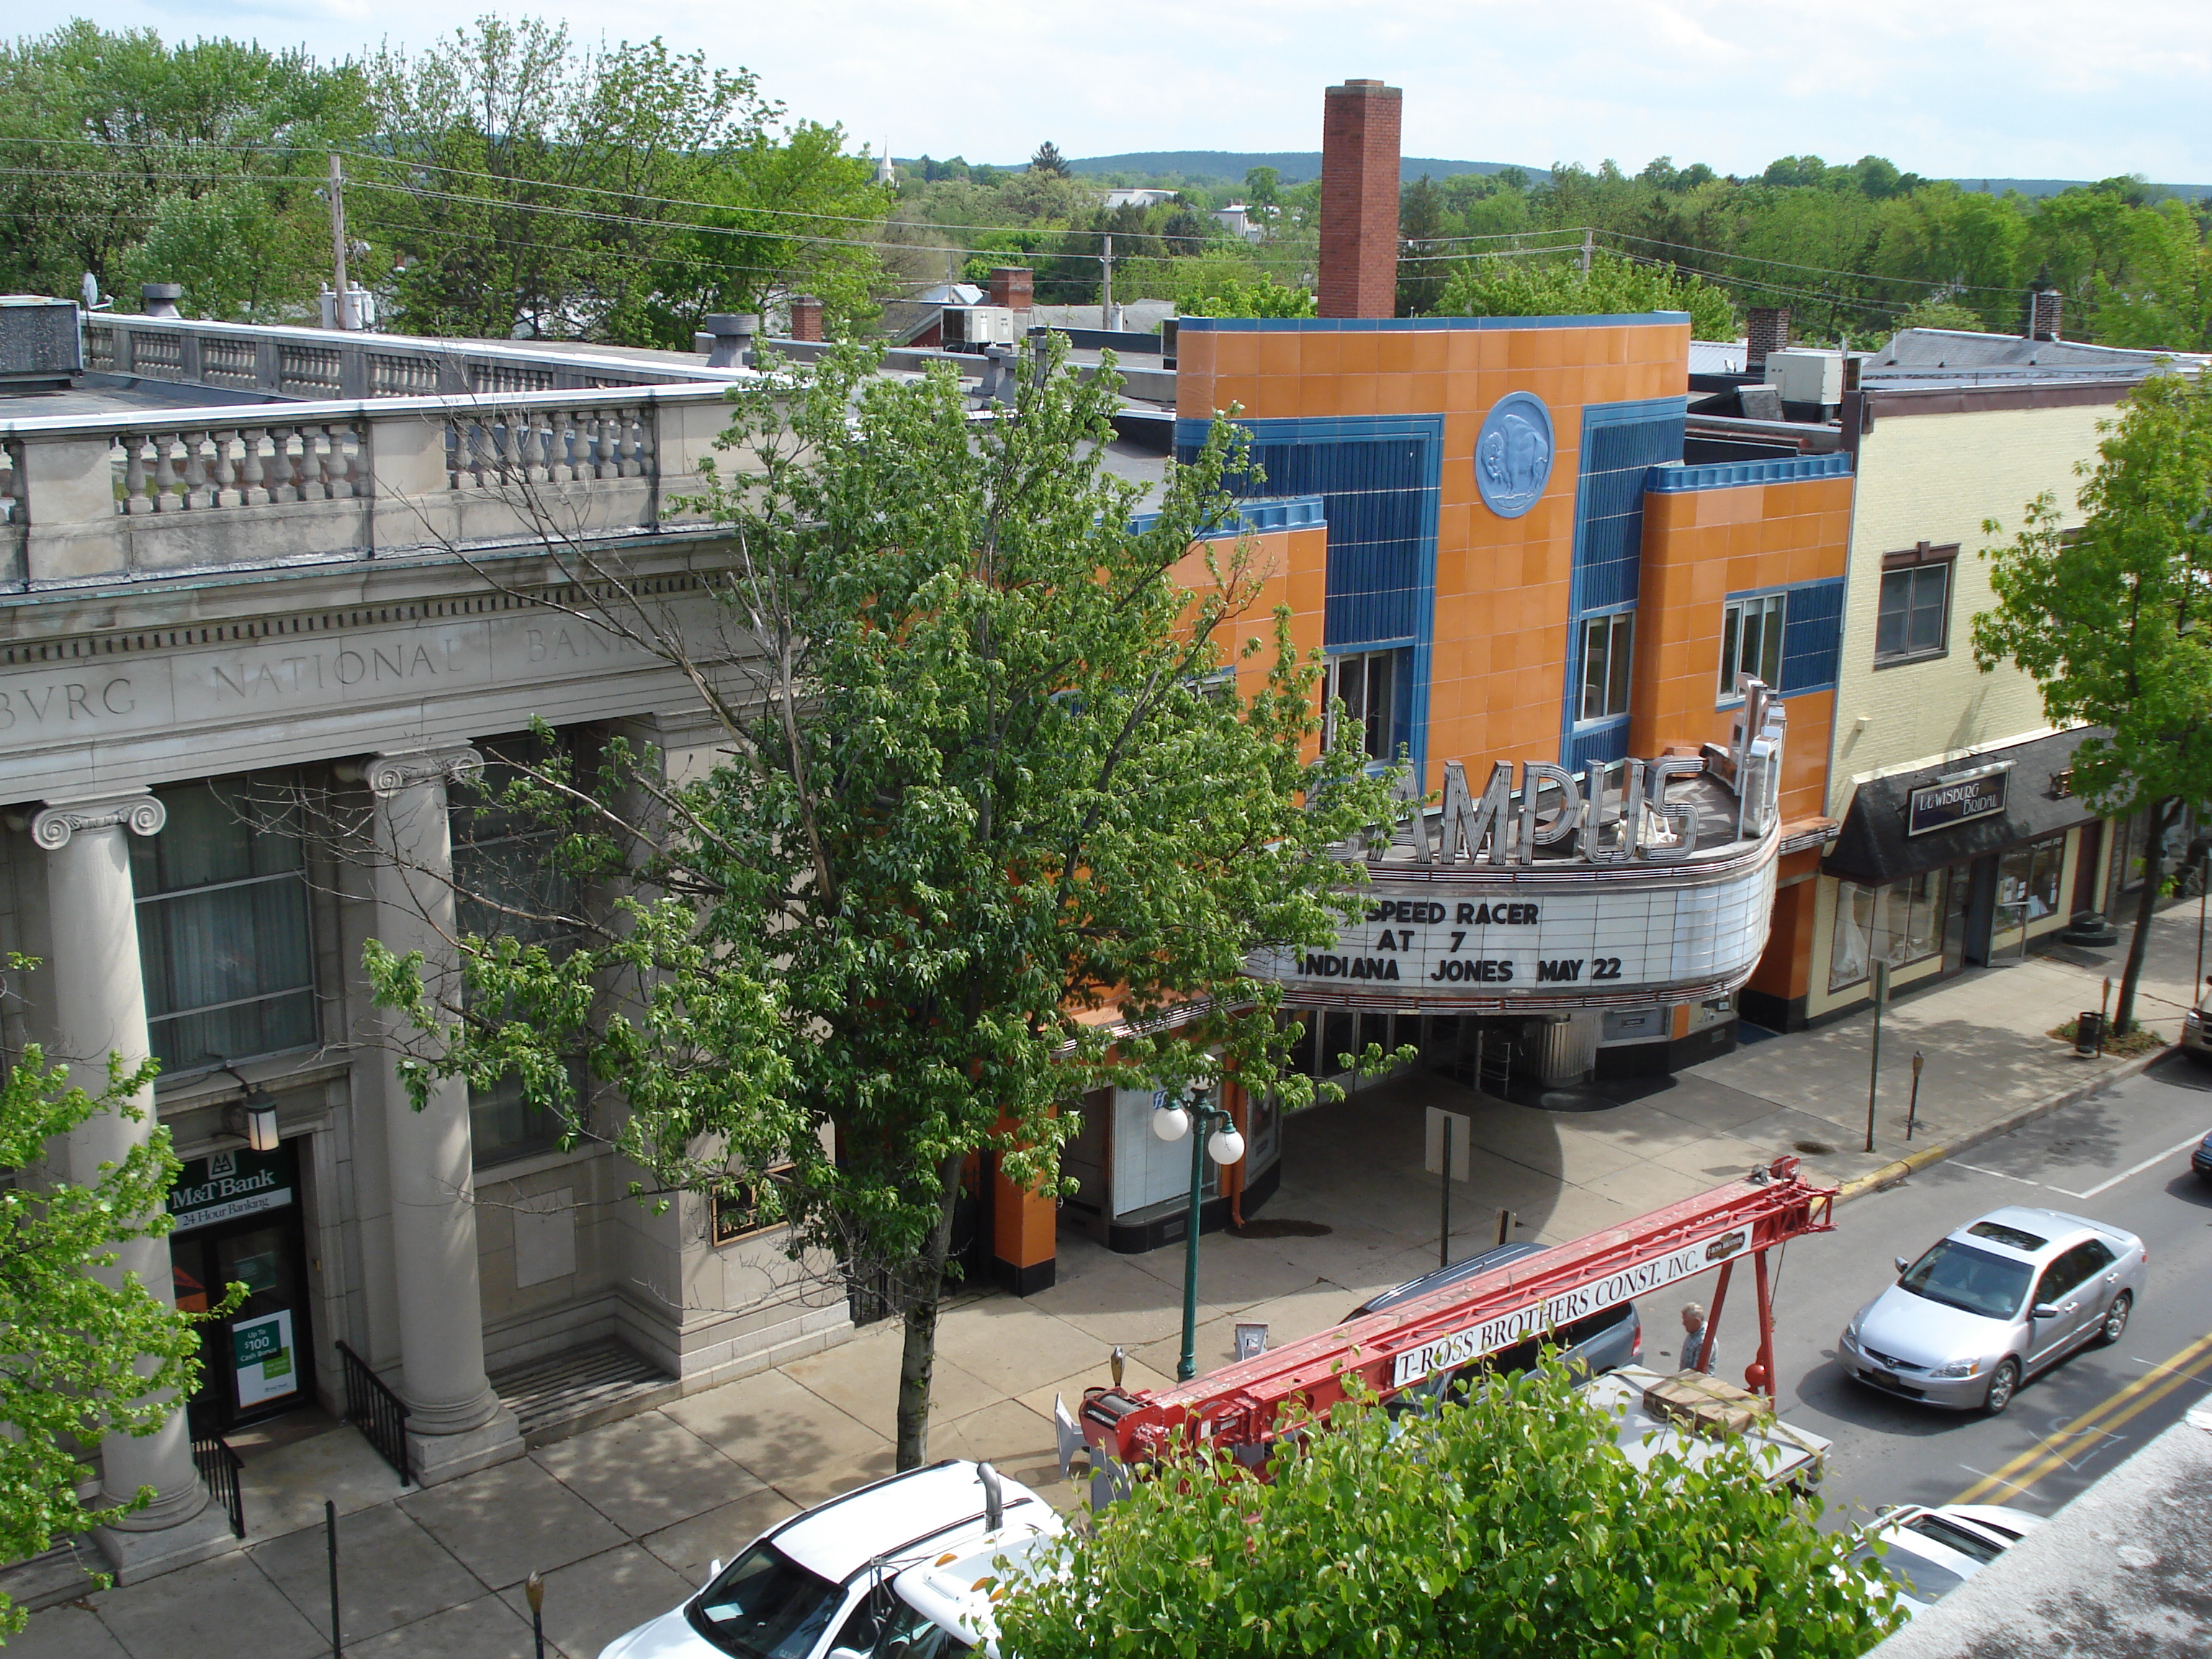 Bucknell invests in downtown Lewisburg: A Q&A assessing the effort 10 years in